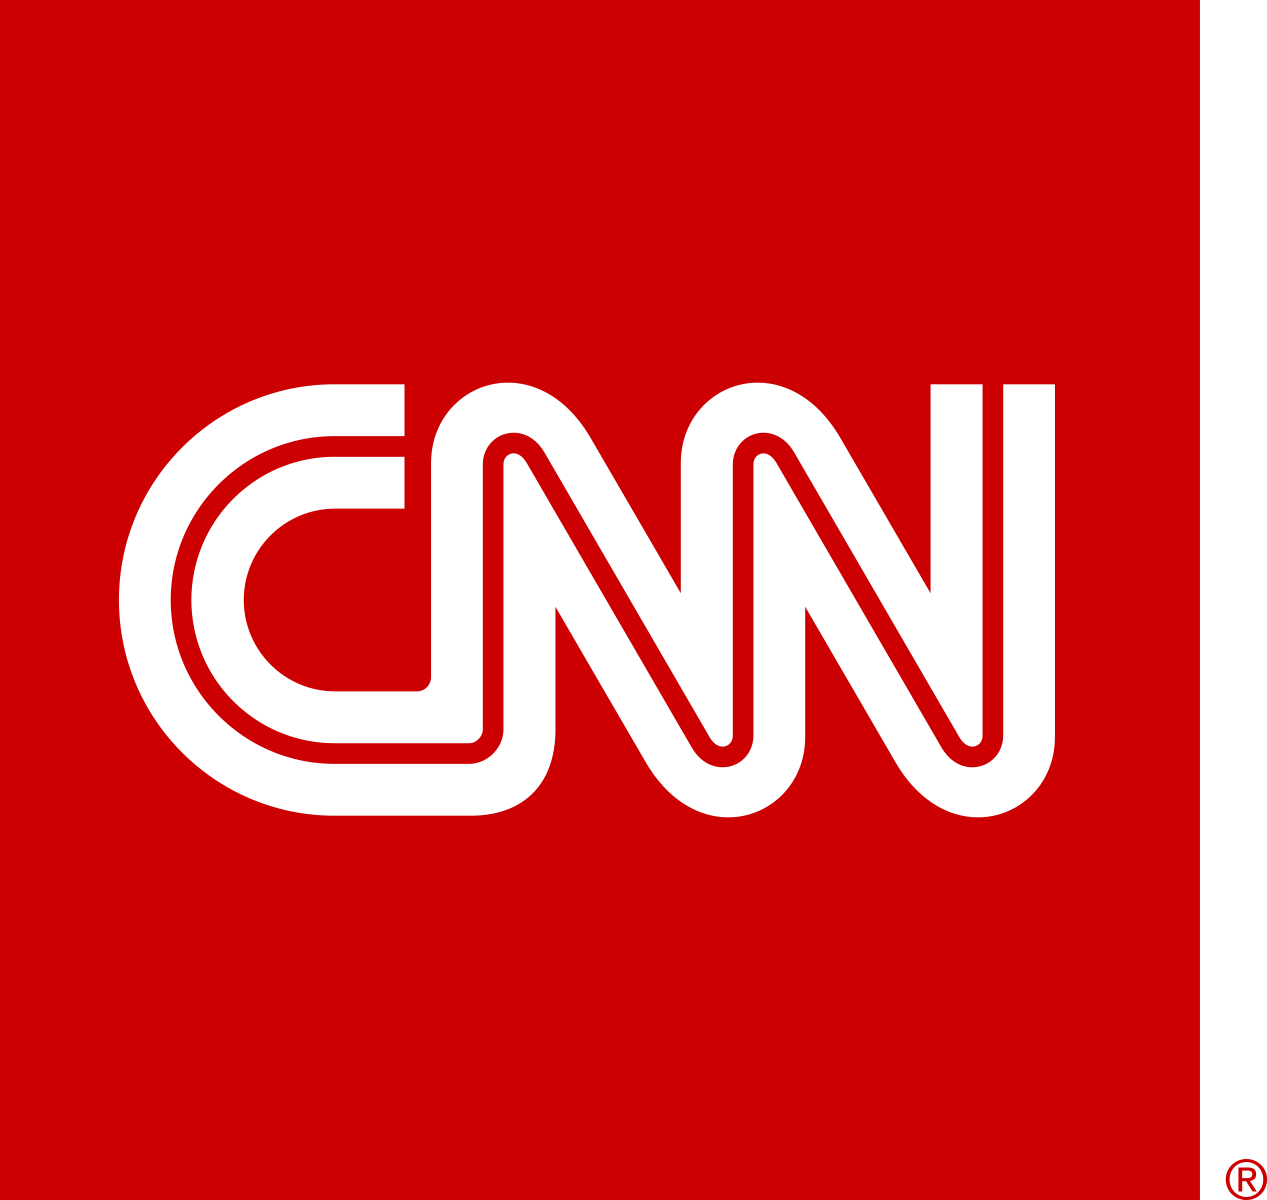 cnn_plated_c.png